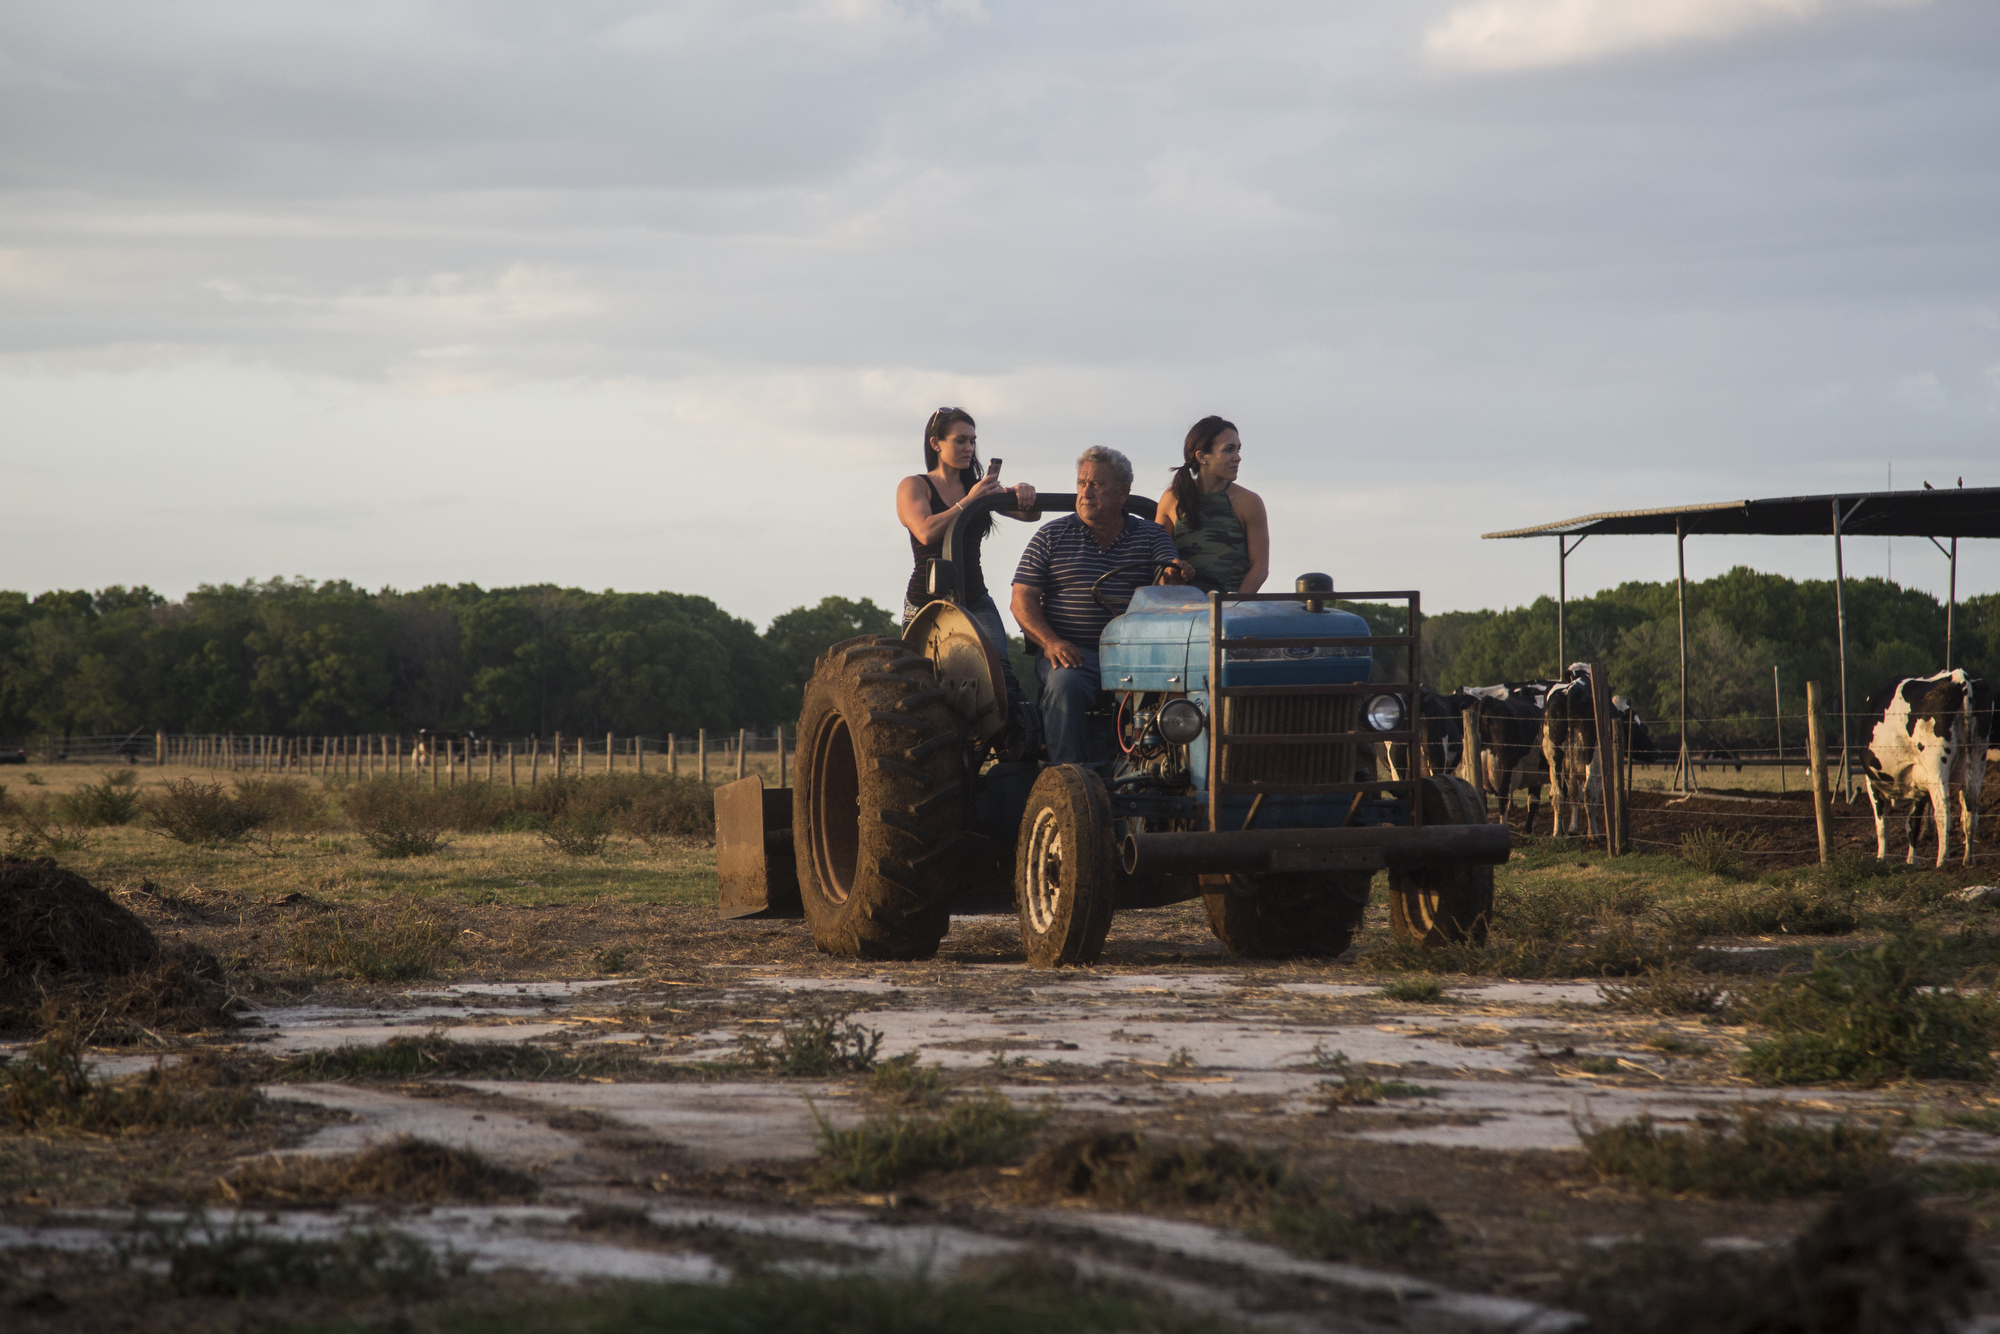 "Savannah Busciglio, Sammy Busciglio, and Samantha Busciglio-Payne ride on a tractor back to the barn at Tower Dairy, after taking a family portrait on March 26, 2017. Savannah and Samantha are Sammy's daughters.   ""I wish there was some way we could buy it,"" Sammy said, referencing the family property in Tampa. ""We could make it a showcase place. We could make it a place where we could teach children where milk comes from."""